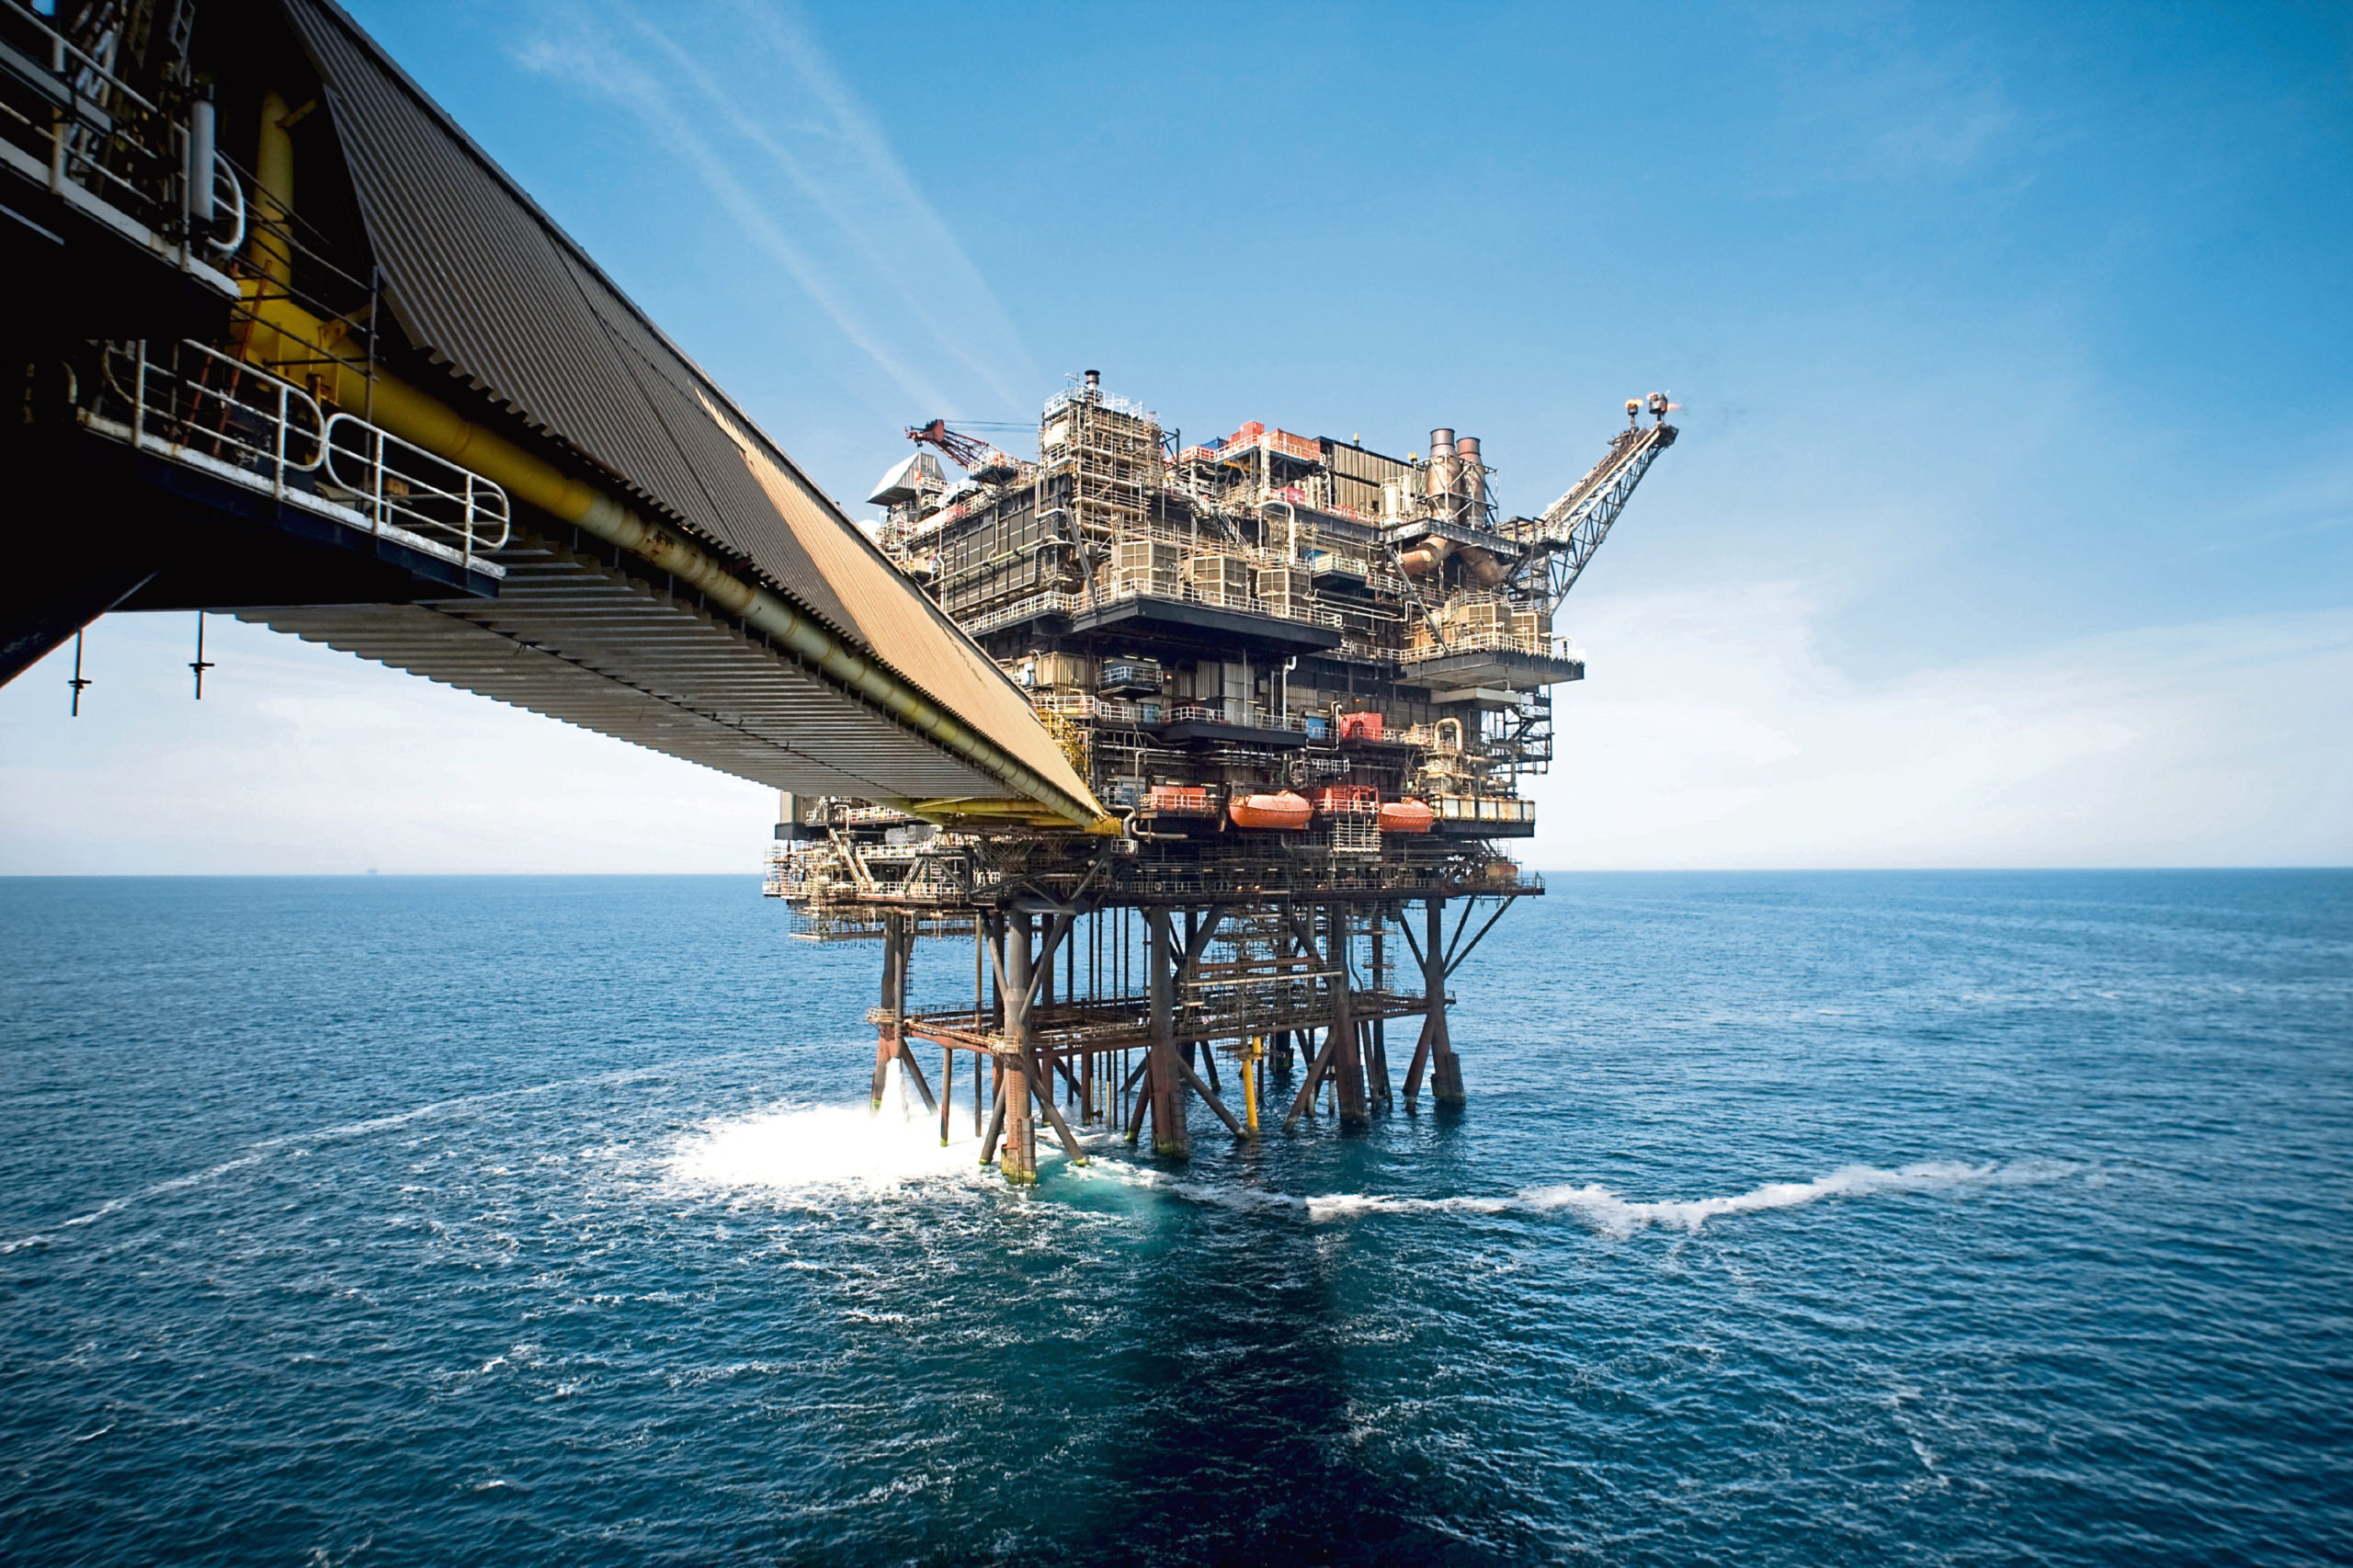 There are concerns the impact of the pandemic on the North Sea oil and gas industry could see Scotland's economy suffer more than that of the UK.